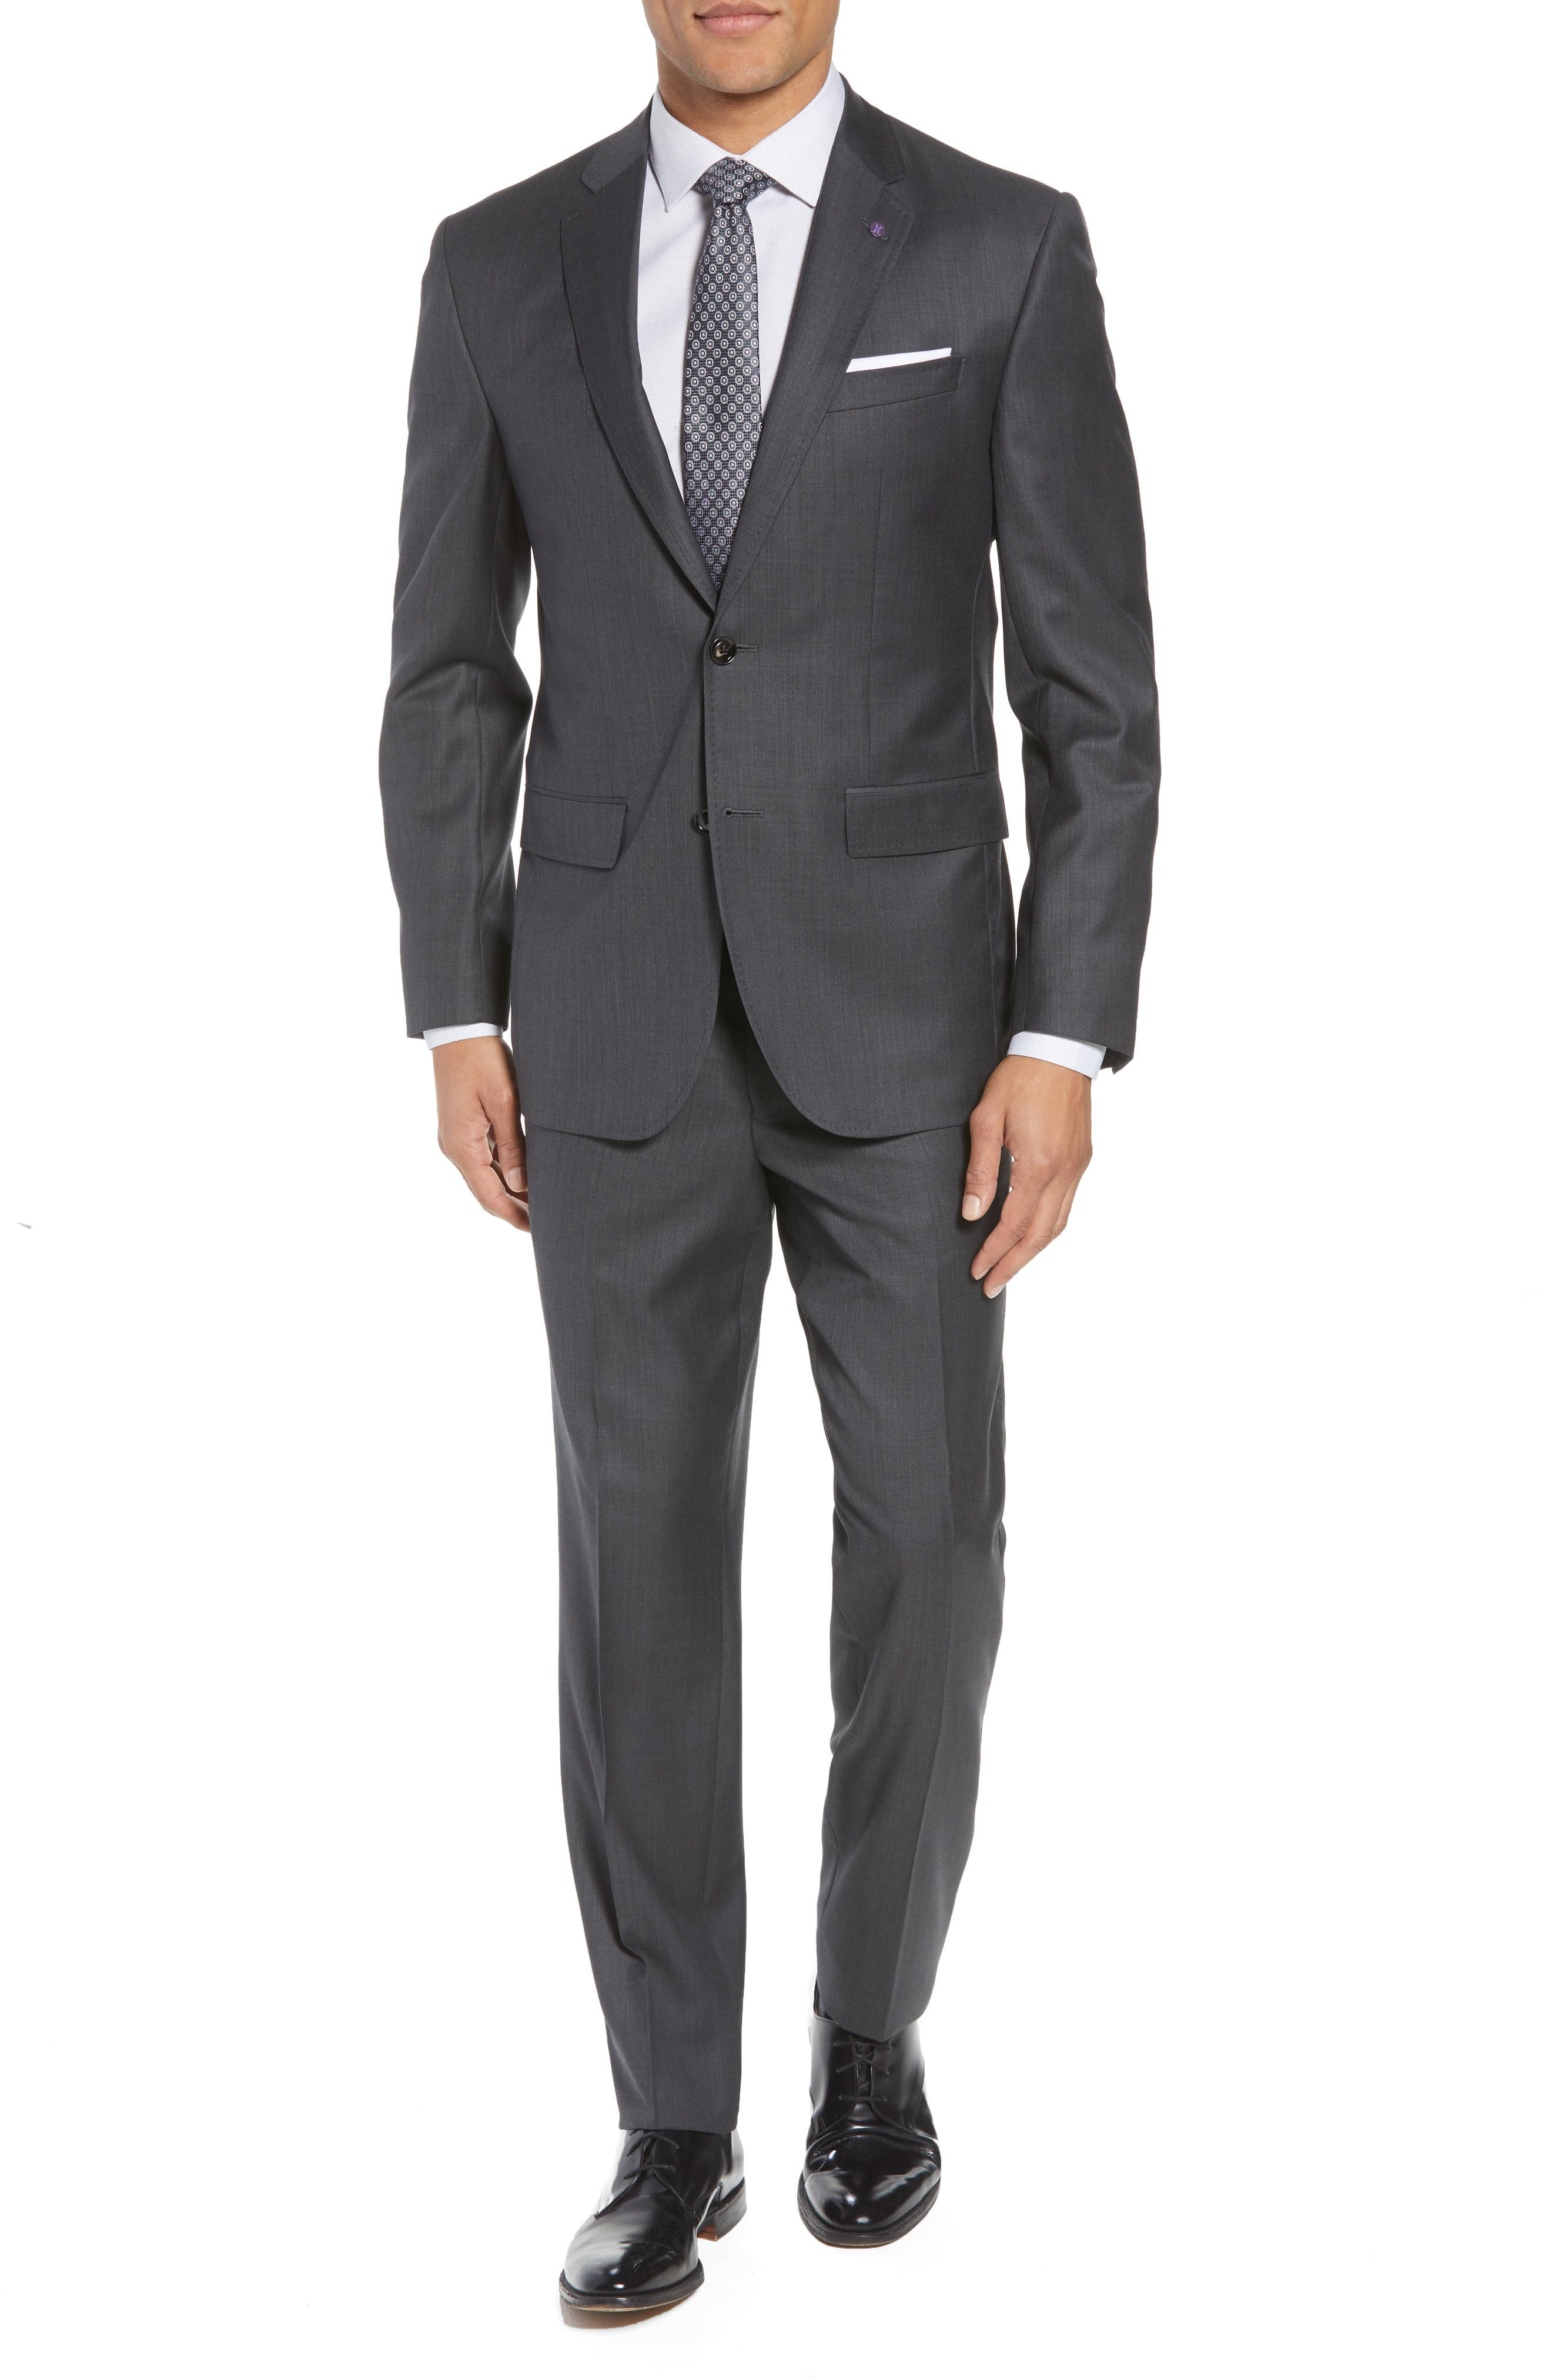 TED BAKER LONDON, Jay Trim Fit Solid Wool Suit, Main thumbnail 1, color, CHARCOAL